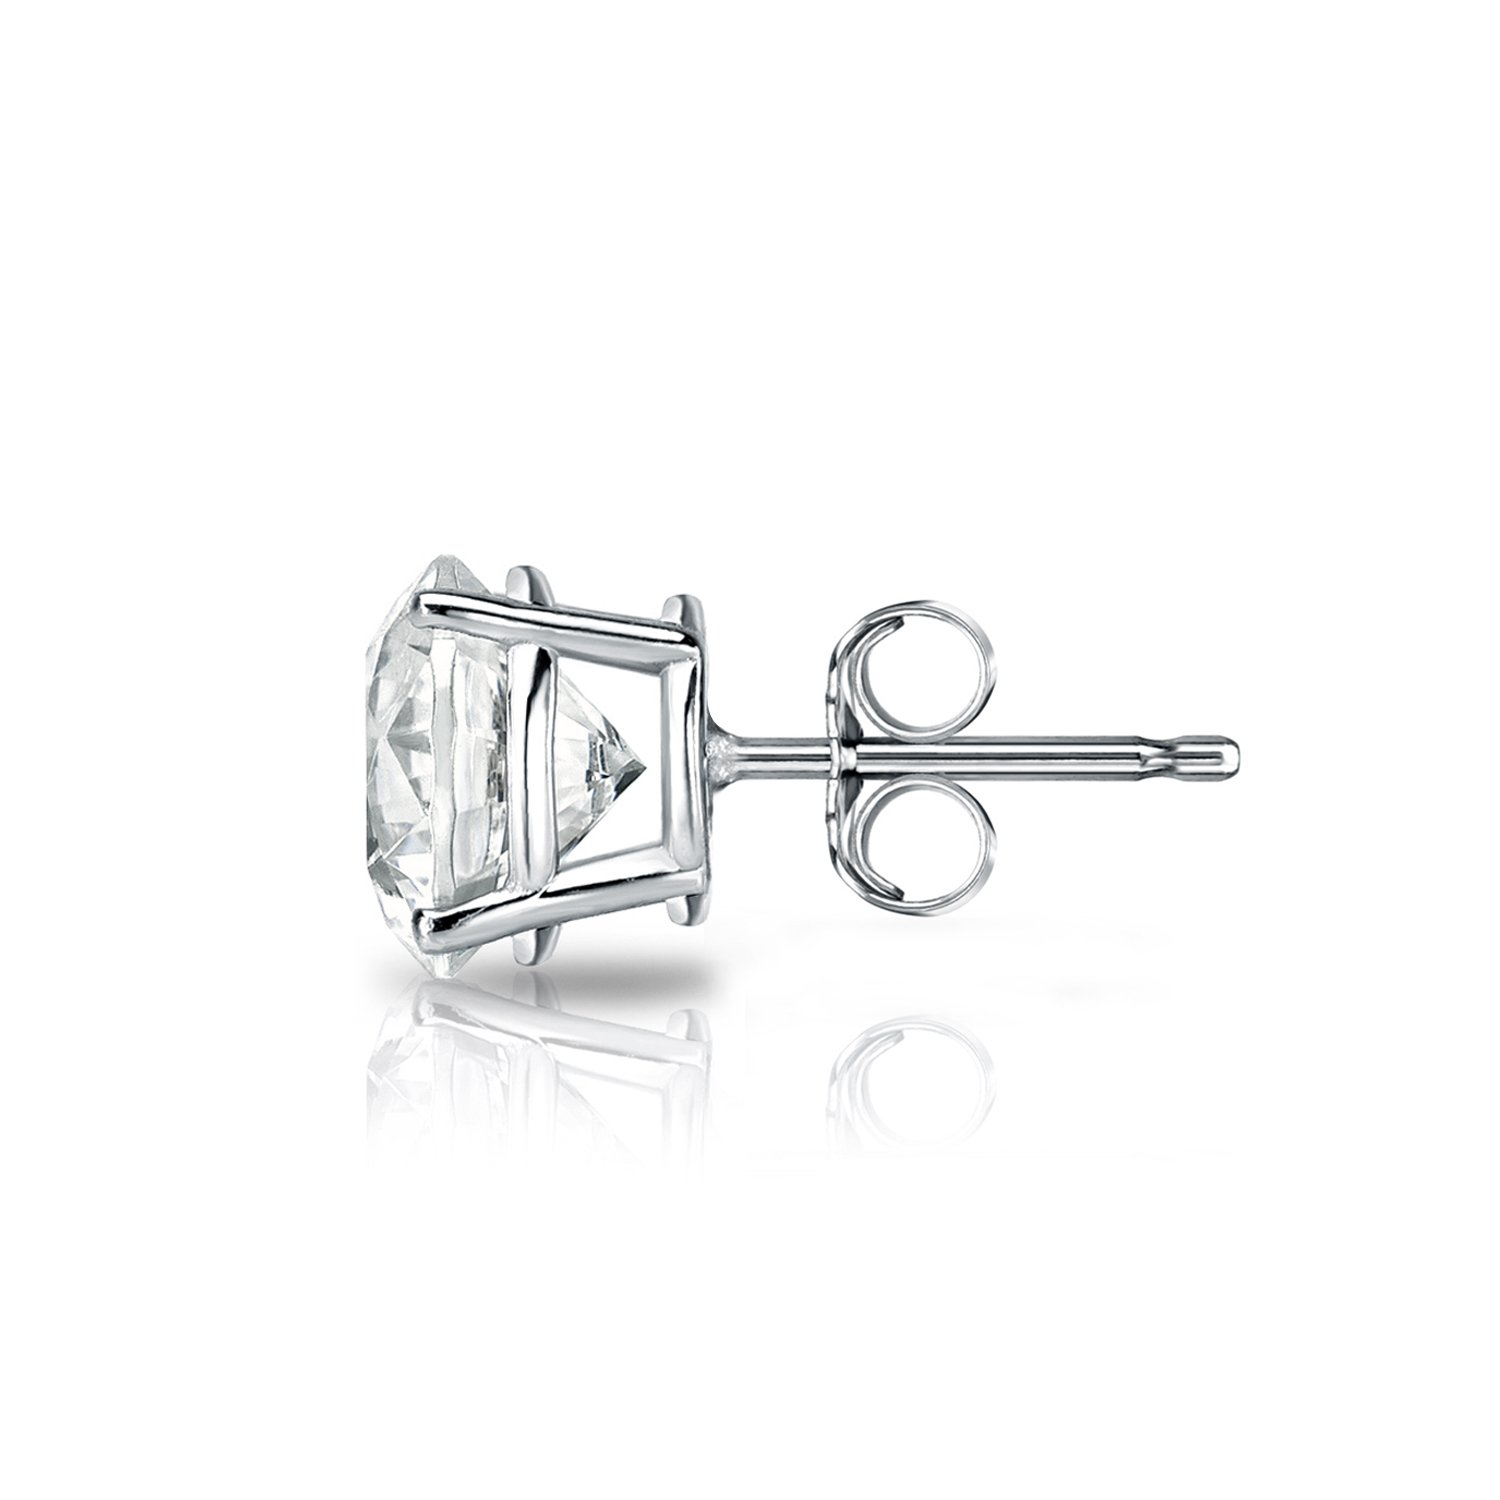 Diamond Wish 18k White Gold Single Stud Round Diamond Earring (1/2 ct, O.White, I2-I3) 4-Prong Basket set with Push-Back by Diamond Wish (Image #2)